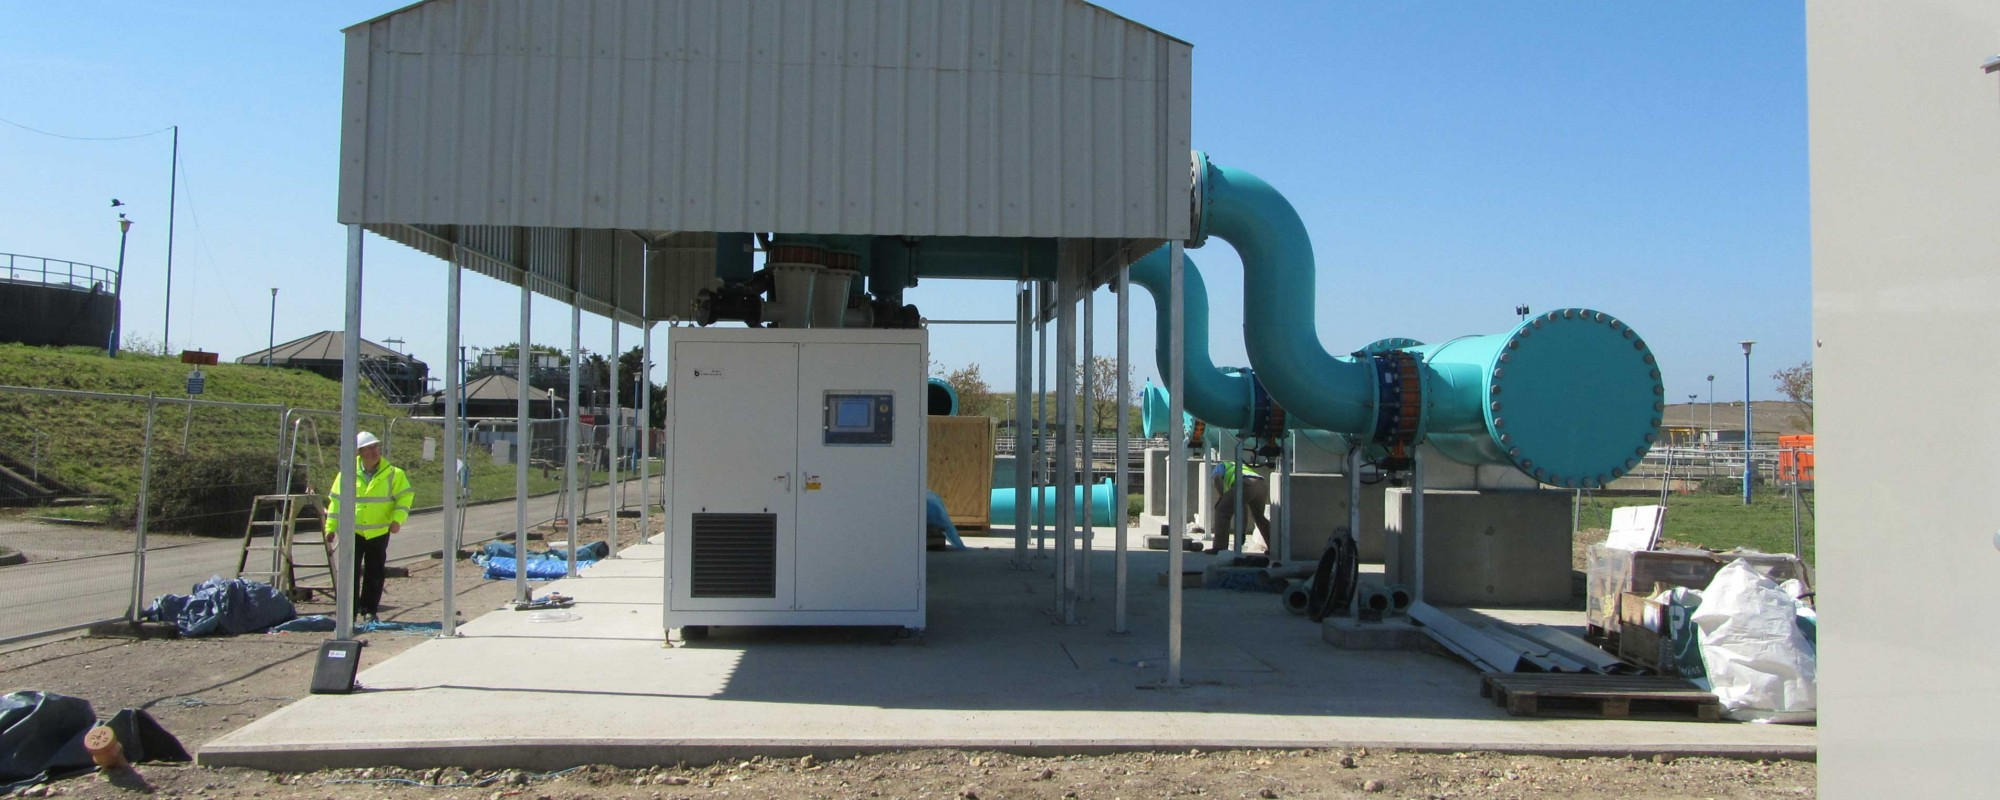 Turbo Blower - Aeration Blowers For Wastewater Treatment